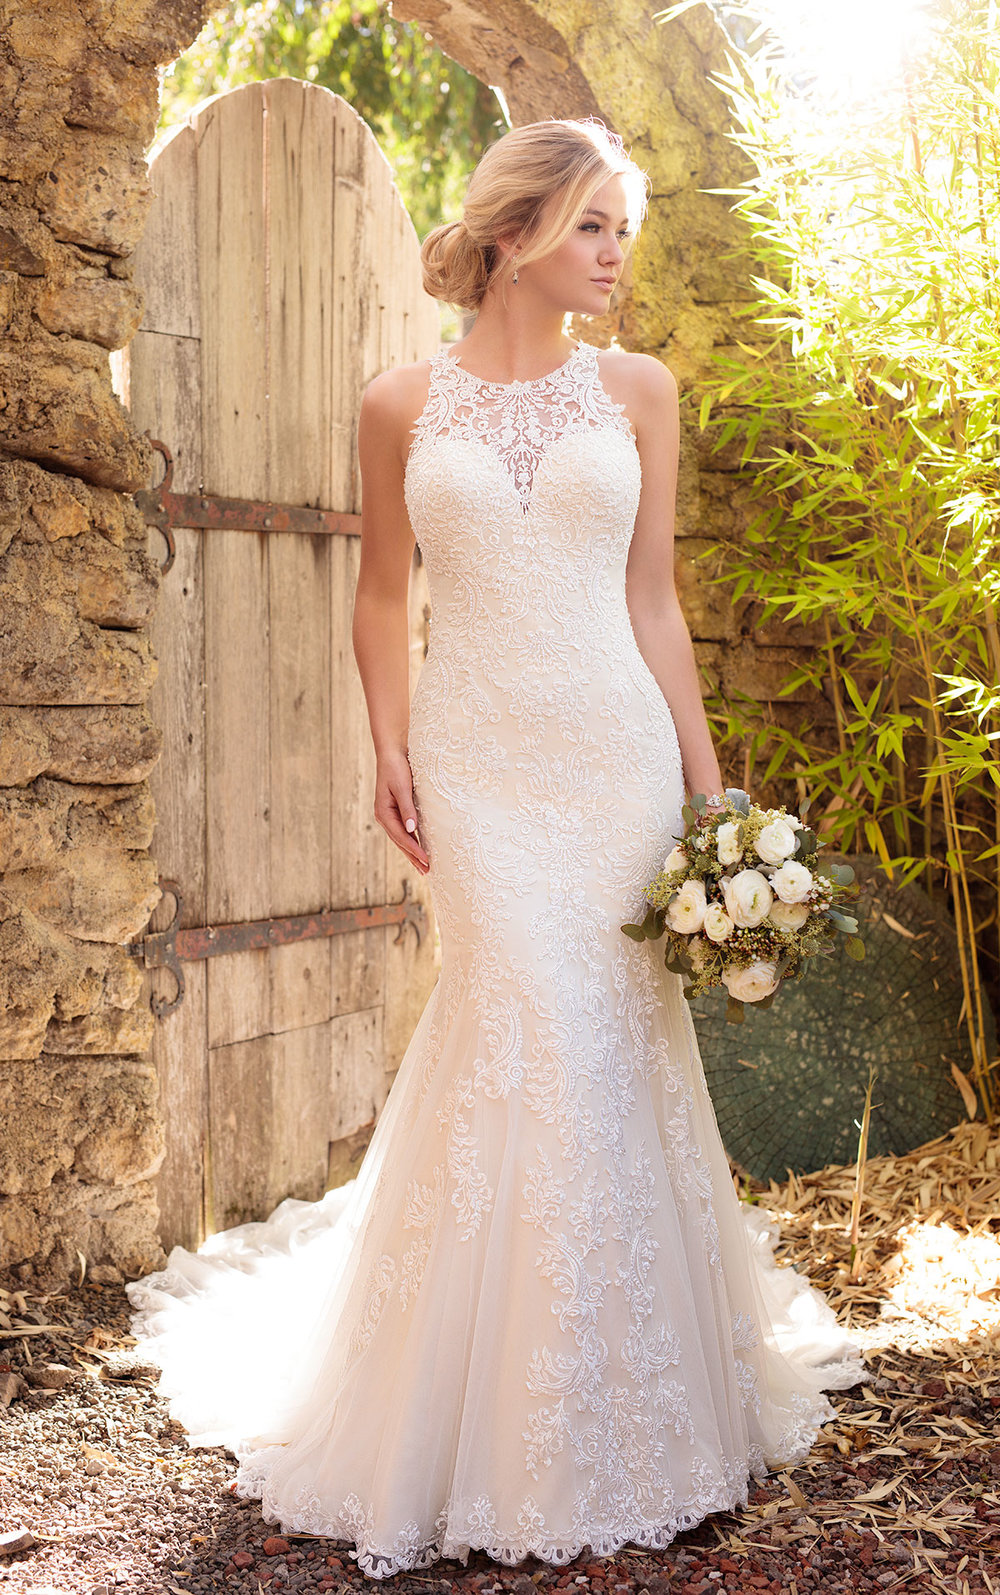 Essense of Australia Halter neckline wedding gown